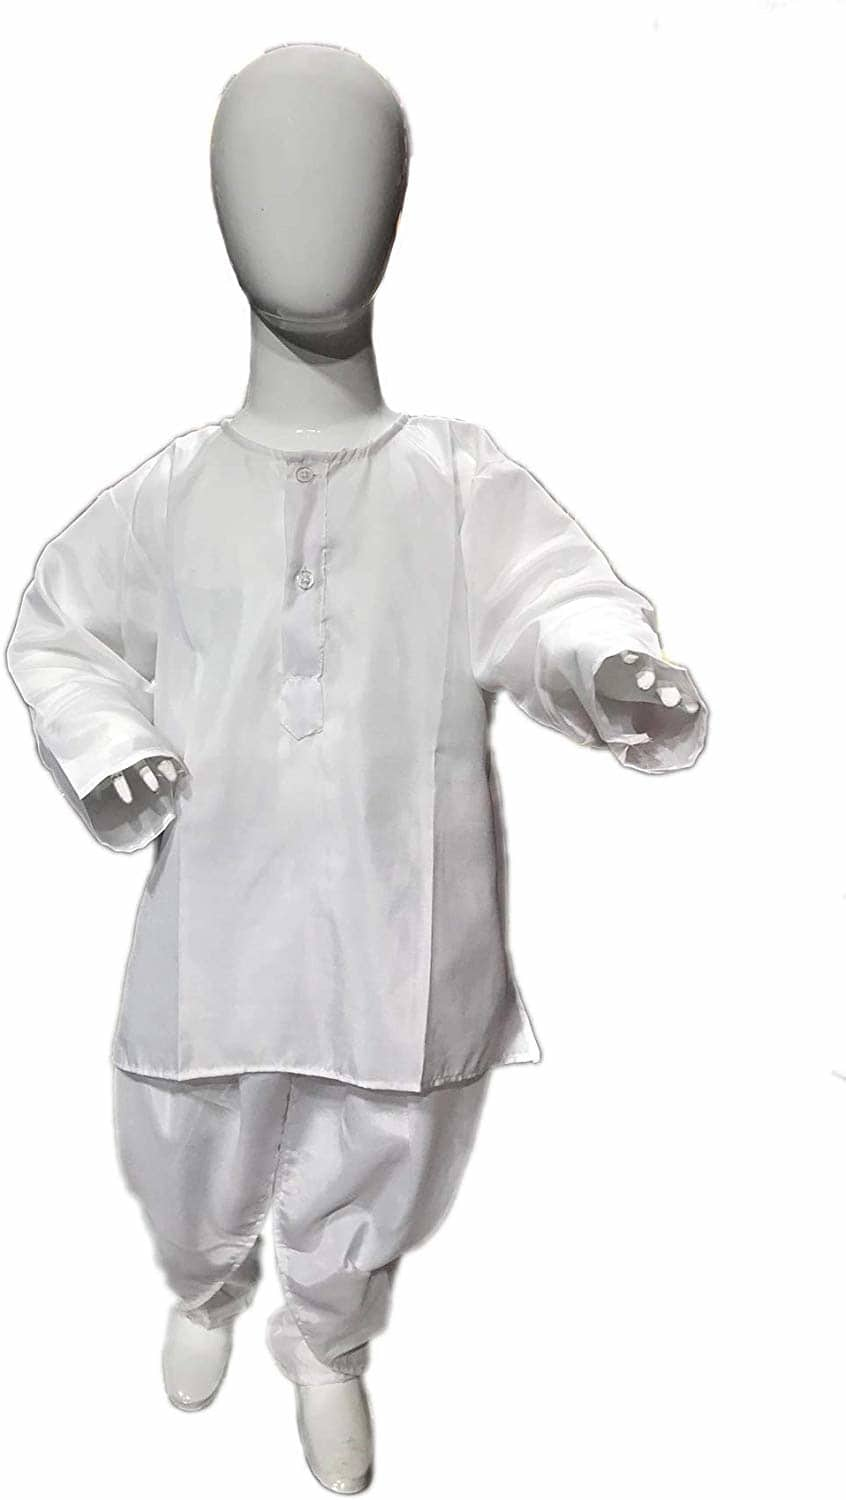 CHANDU KI DUKAN White Dhoti Kurta Traditional Costume 1-2 YRS  1)CHANDU KI DUKAN WHITE DHOTI KURTA INCLUDES EVERTHING A CHILD NEEDS. 2)Material: made of very soft & breathable fabric. 3)COSTUME FOR SCHOOL ANNUAL FUNCTION/THEME PARTY/COMPETITION AND STAGE SHOWS  https://www.amazon.in/dp/B07YSMF8PJ?ref=myi_title_dp